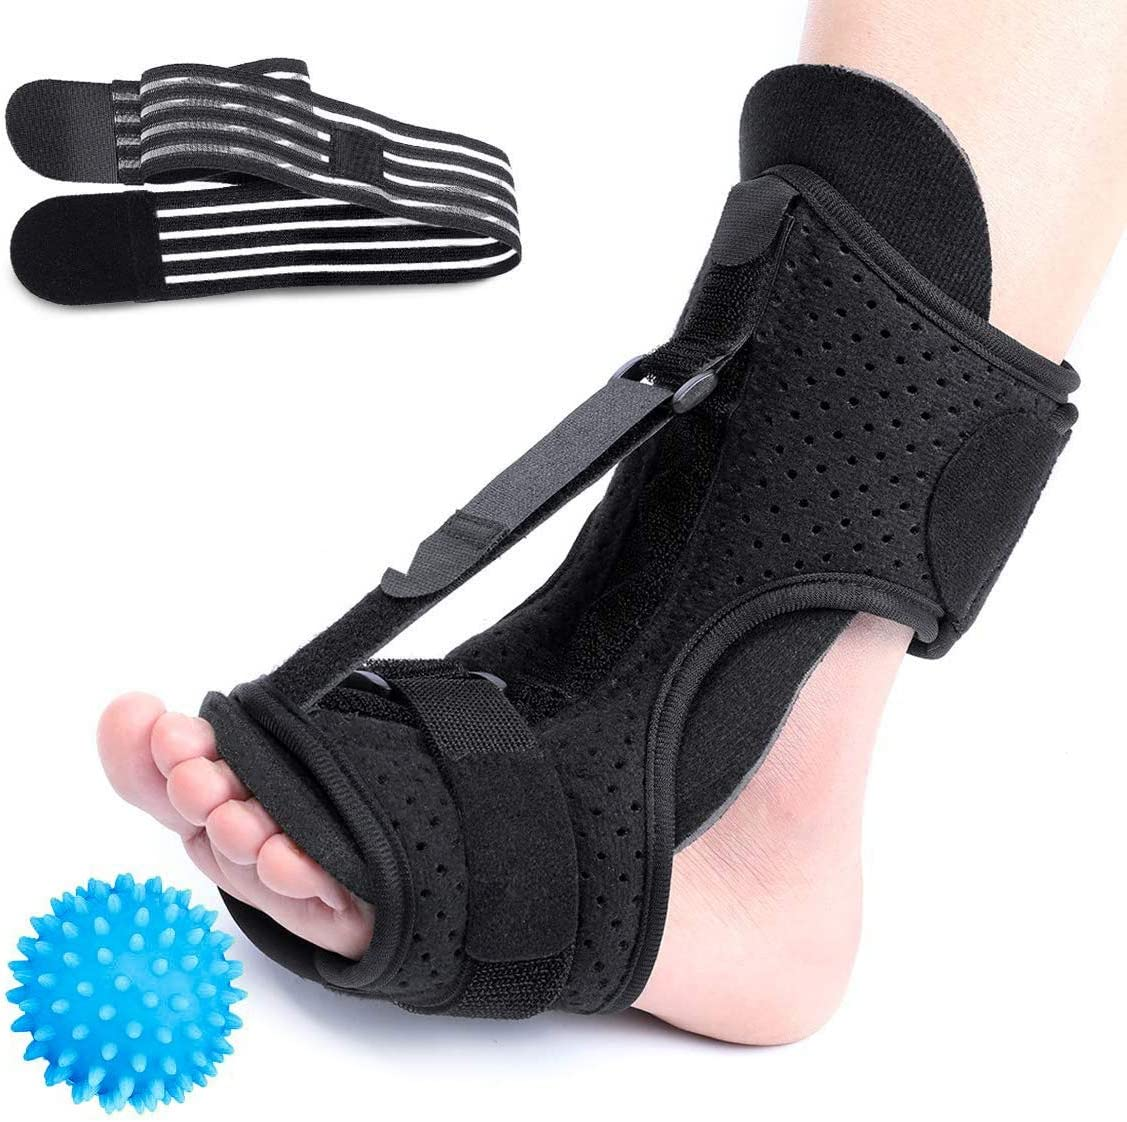 CHARMINER Plantar Fasciitis Night Splint Foot Drop Orthotic Brace, Adjustable Elastic Dorsal Splint, Effective Relief from Plantar Fasciitis Pain, Heel, Arch Foot Pain Green: Sports & Outdoors